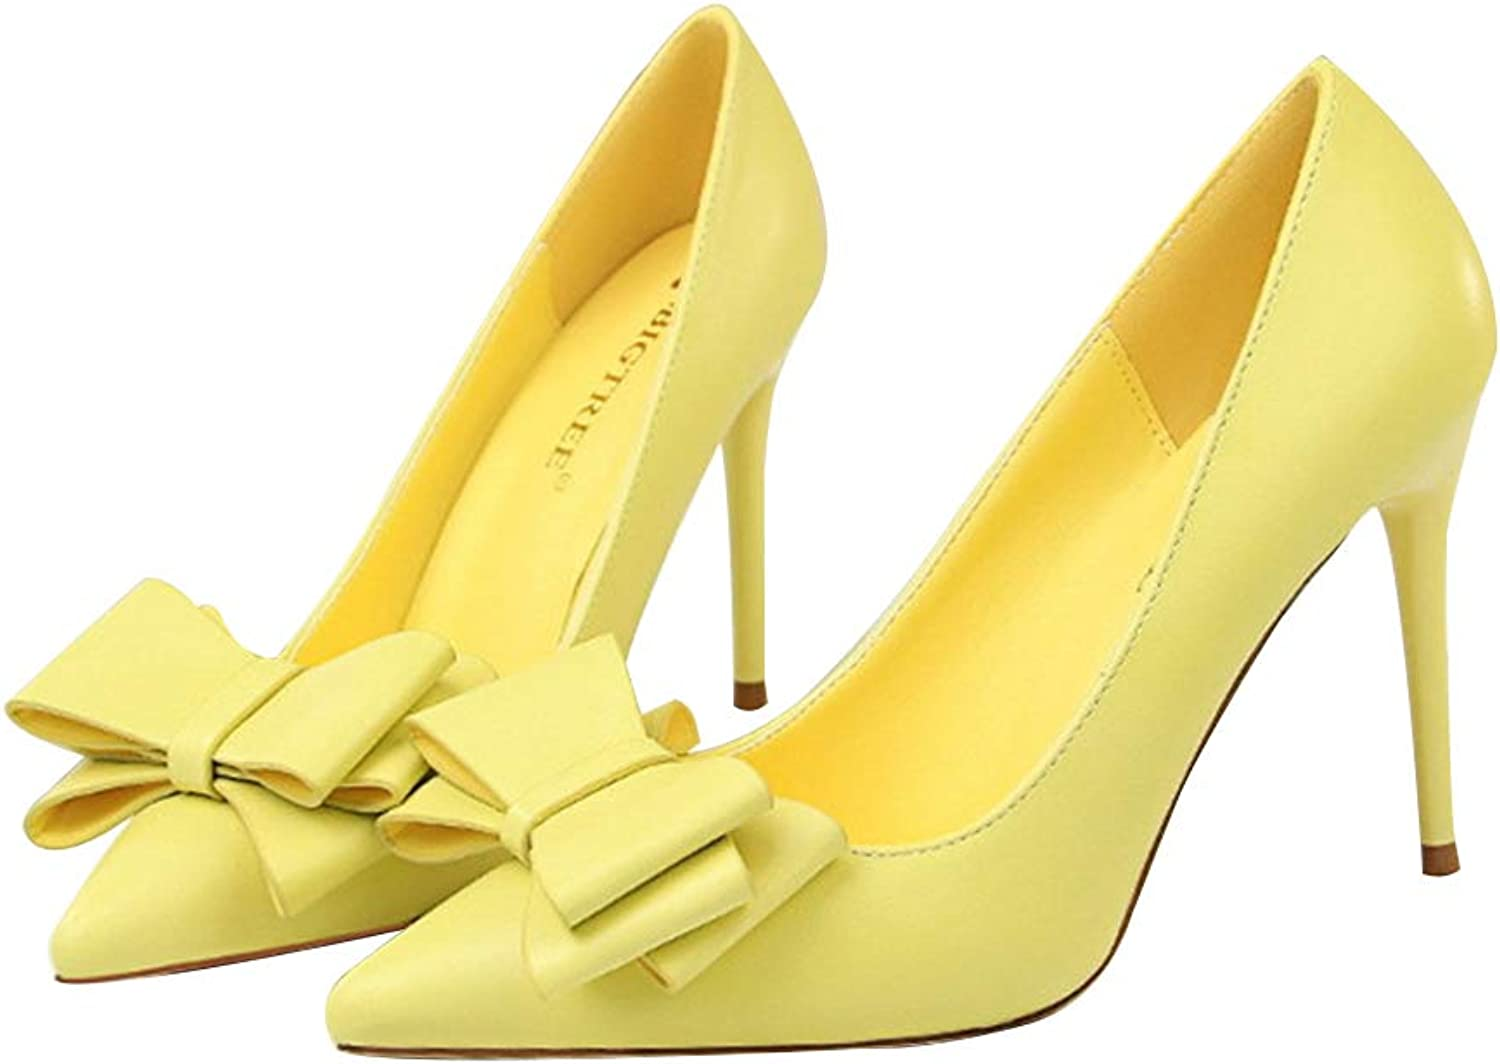 Smart.A Women's Fashion Pointed Shallow Mouth Bow high Heels